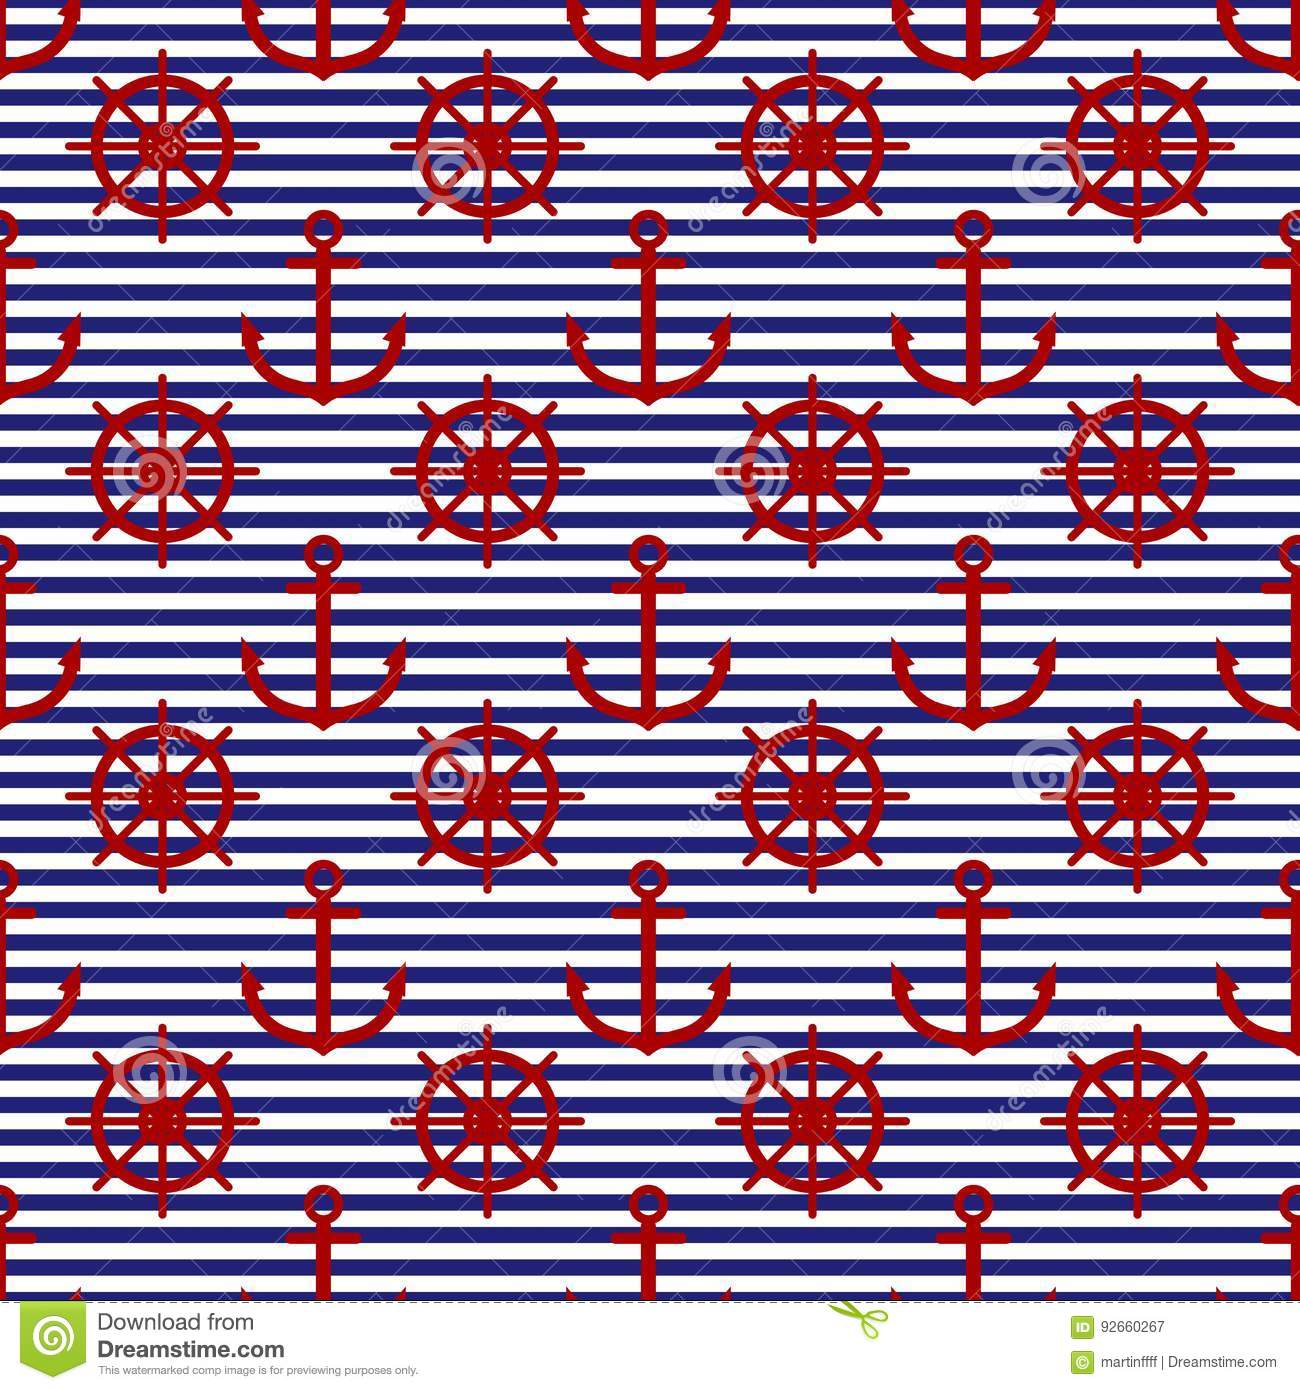 a182f7f2a05 Navy rudder and anchor on blue and white horizontal stripes seamless pattern